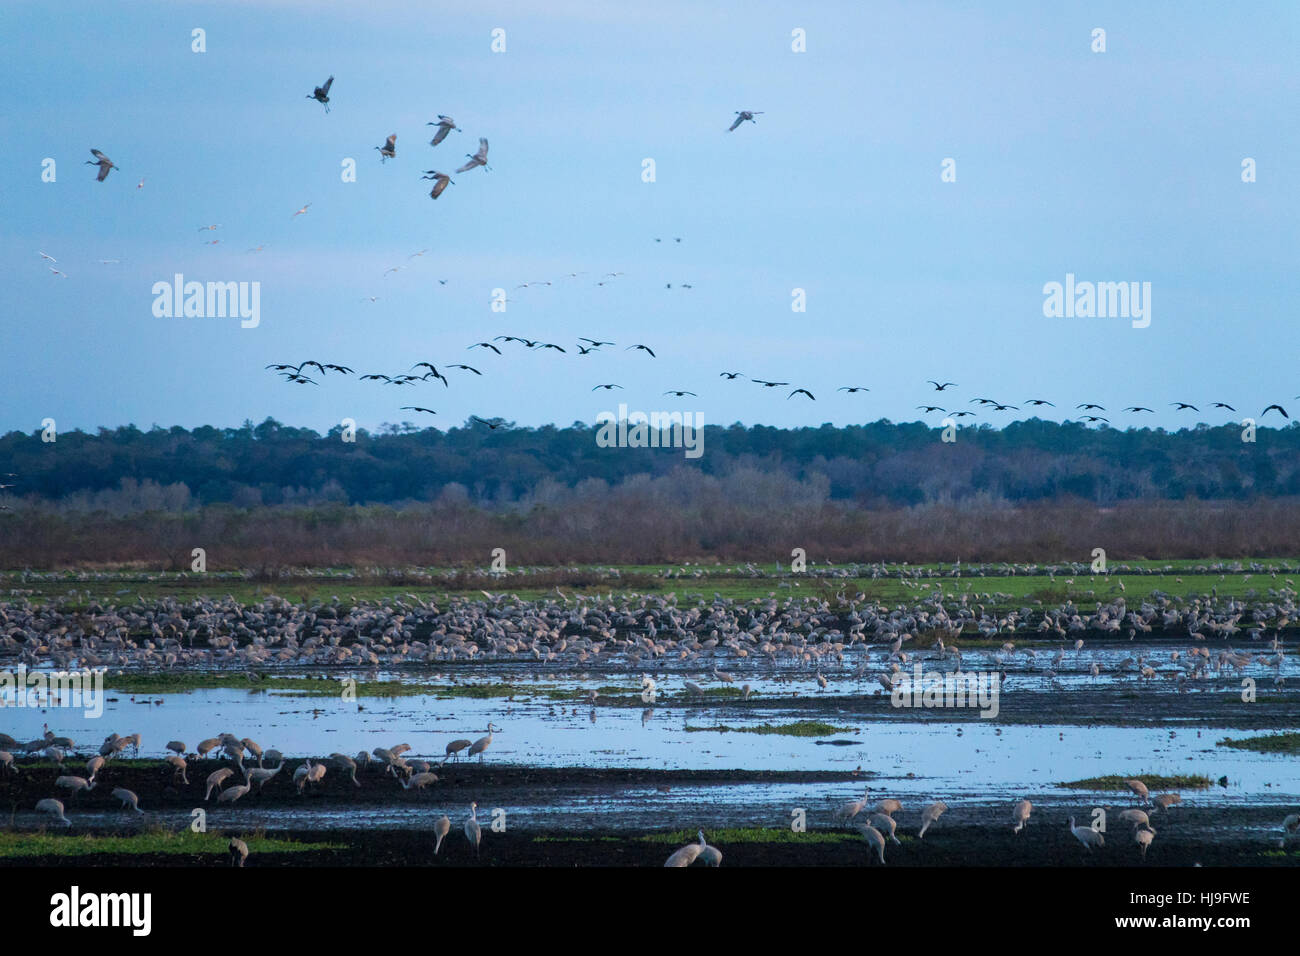 Wintering Sandhill Cranes gathering to roost at L Chua Sink, Paynes Prairie State Park, Florida - Stock Image